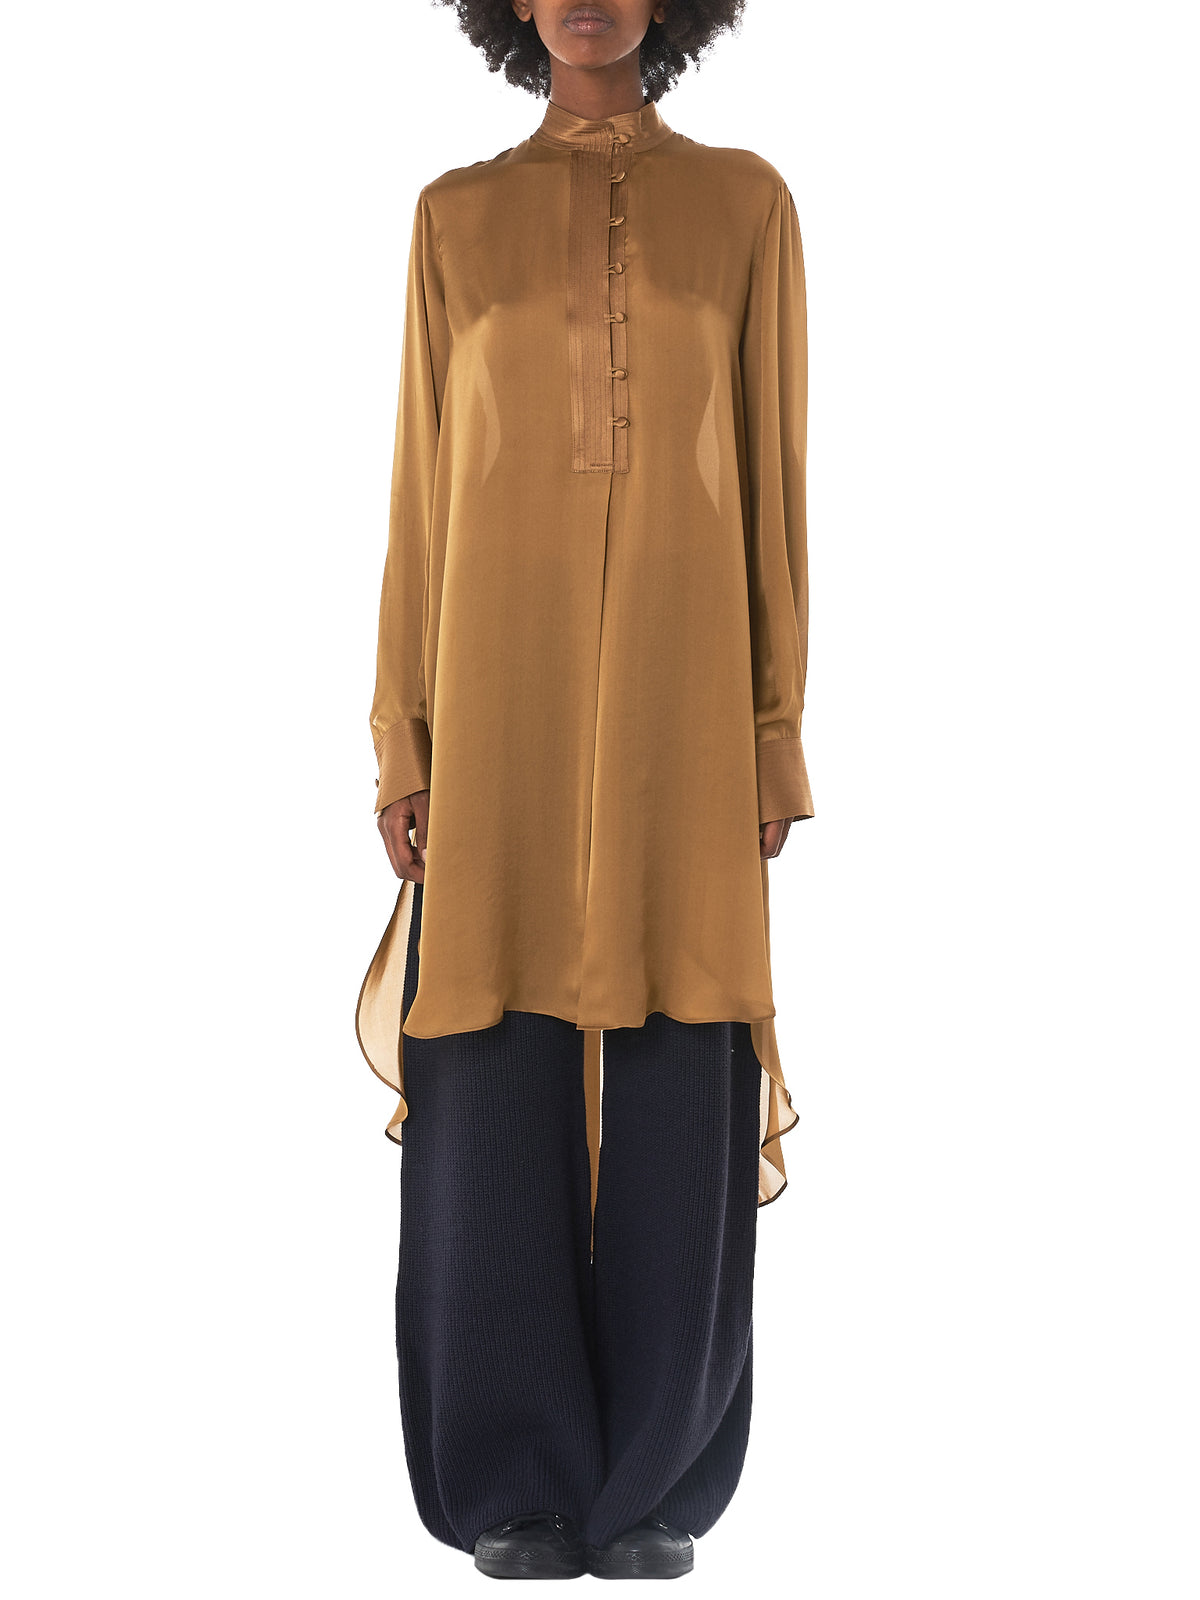 Lee Silk Wrap Shirt (AW3T034-CAMEL)